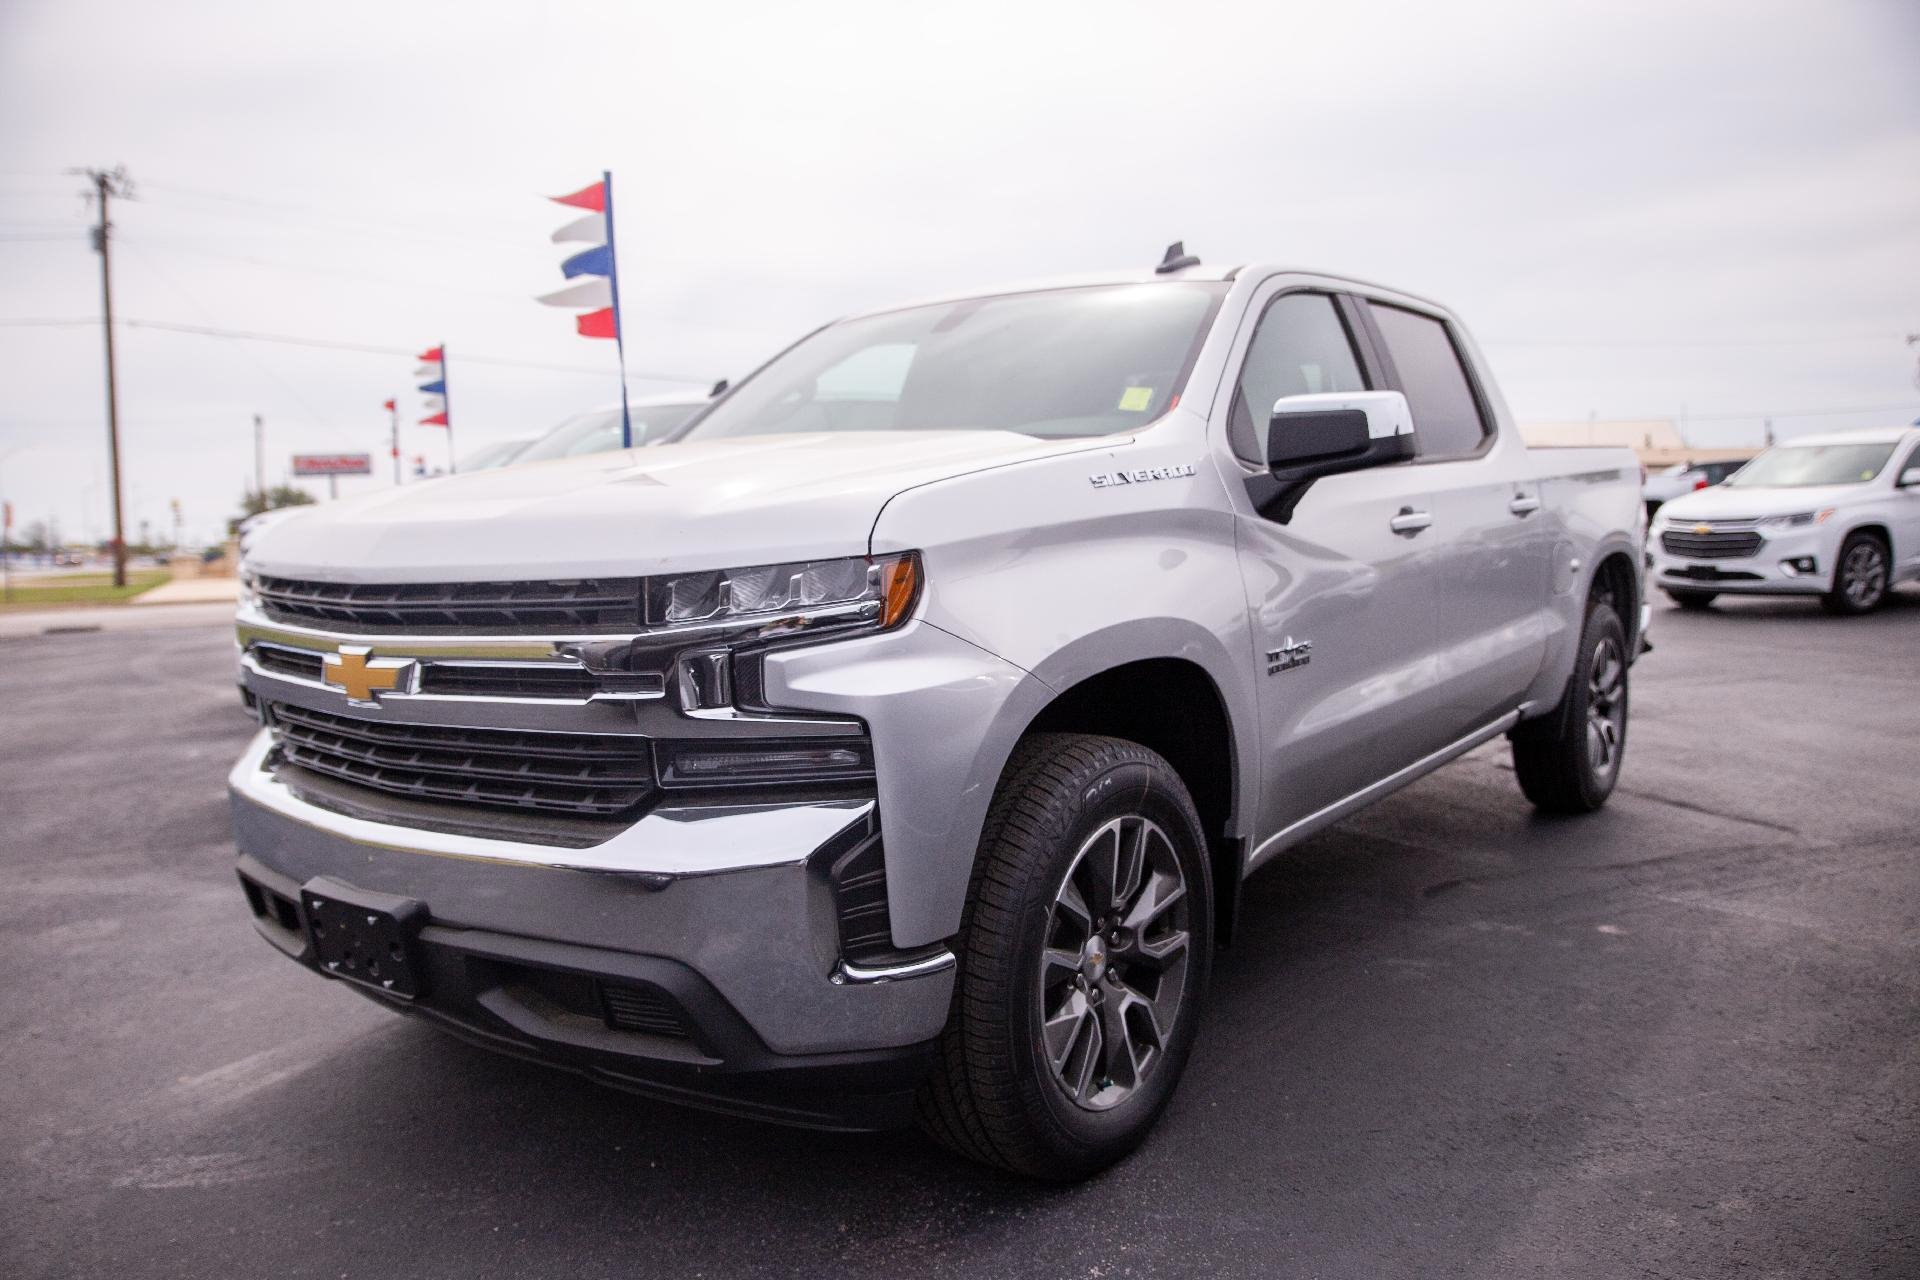 New 2019 Chevrolet-Colorado Z71 Colorado Z71 for sale $37,000 at M and V Leasing in Brooklyn NY 11223 1